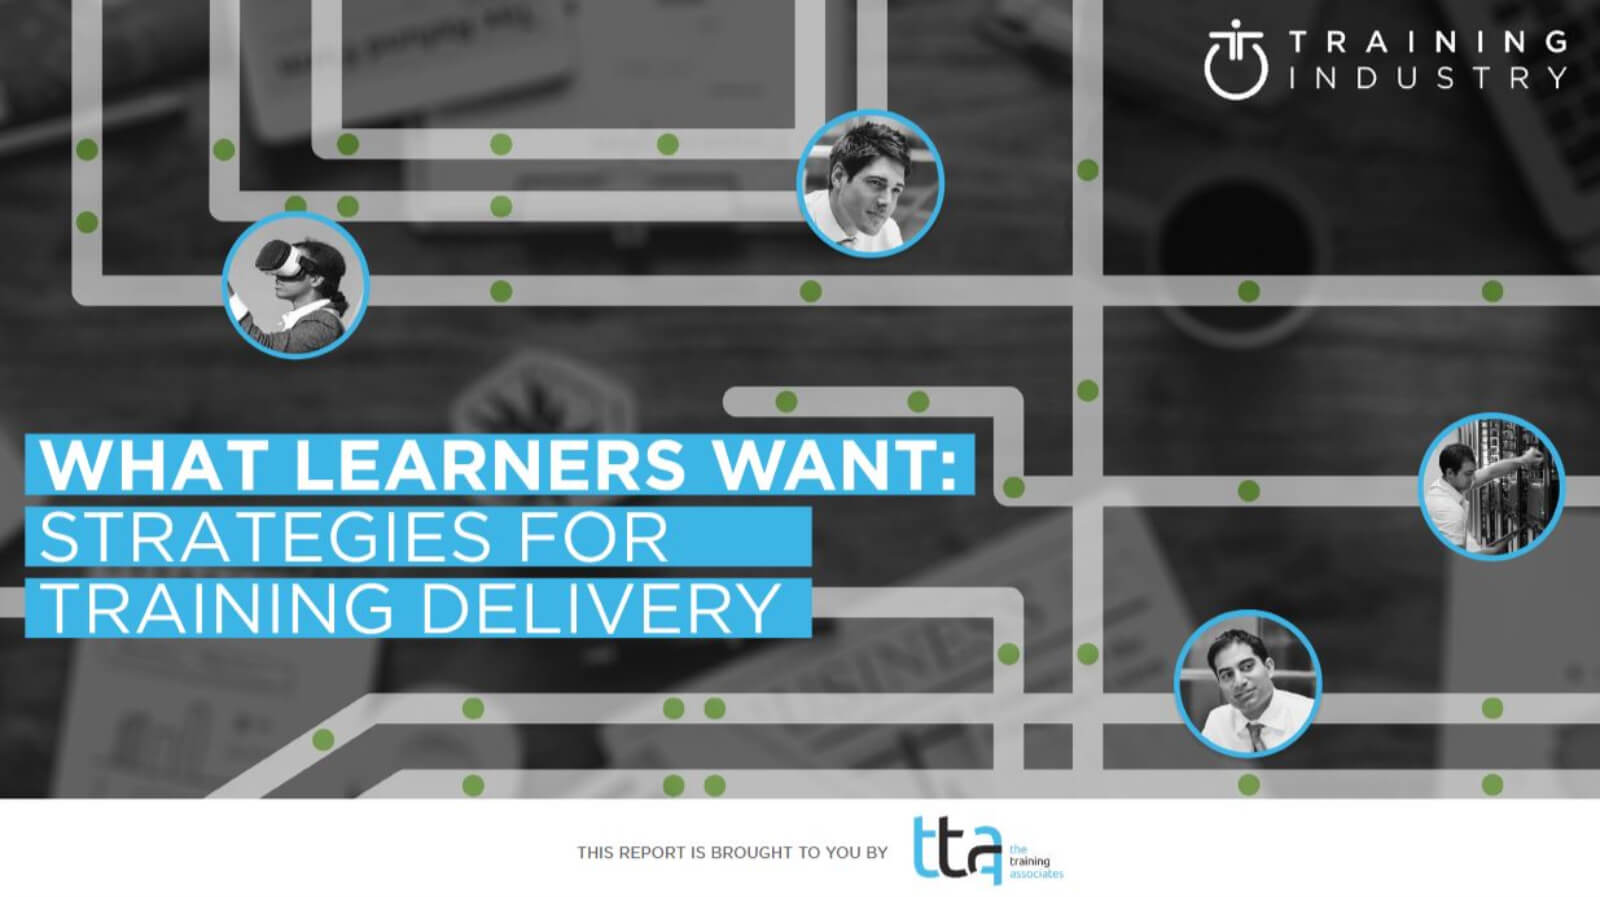 What Learners Want White Paper